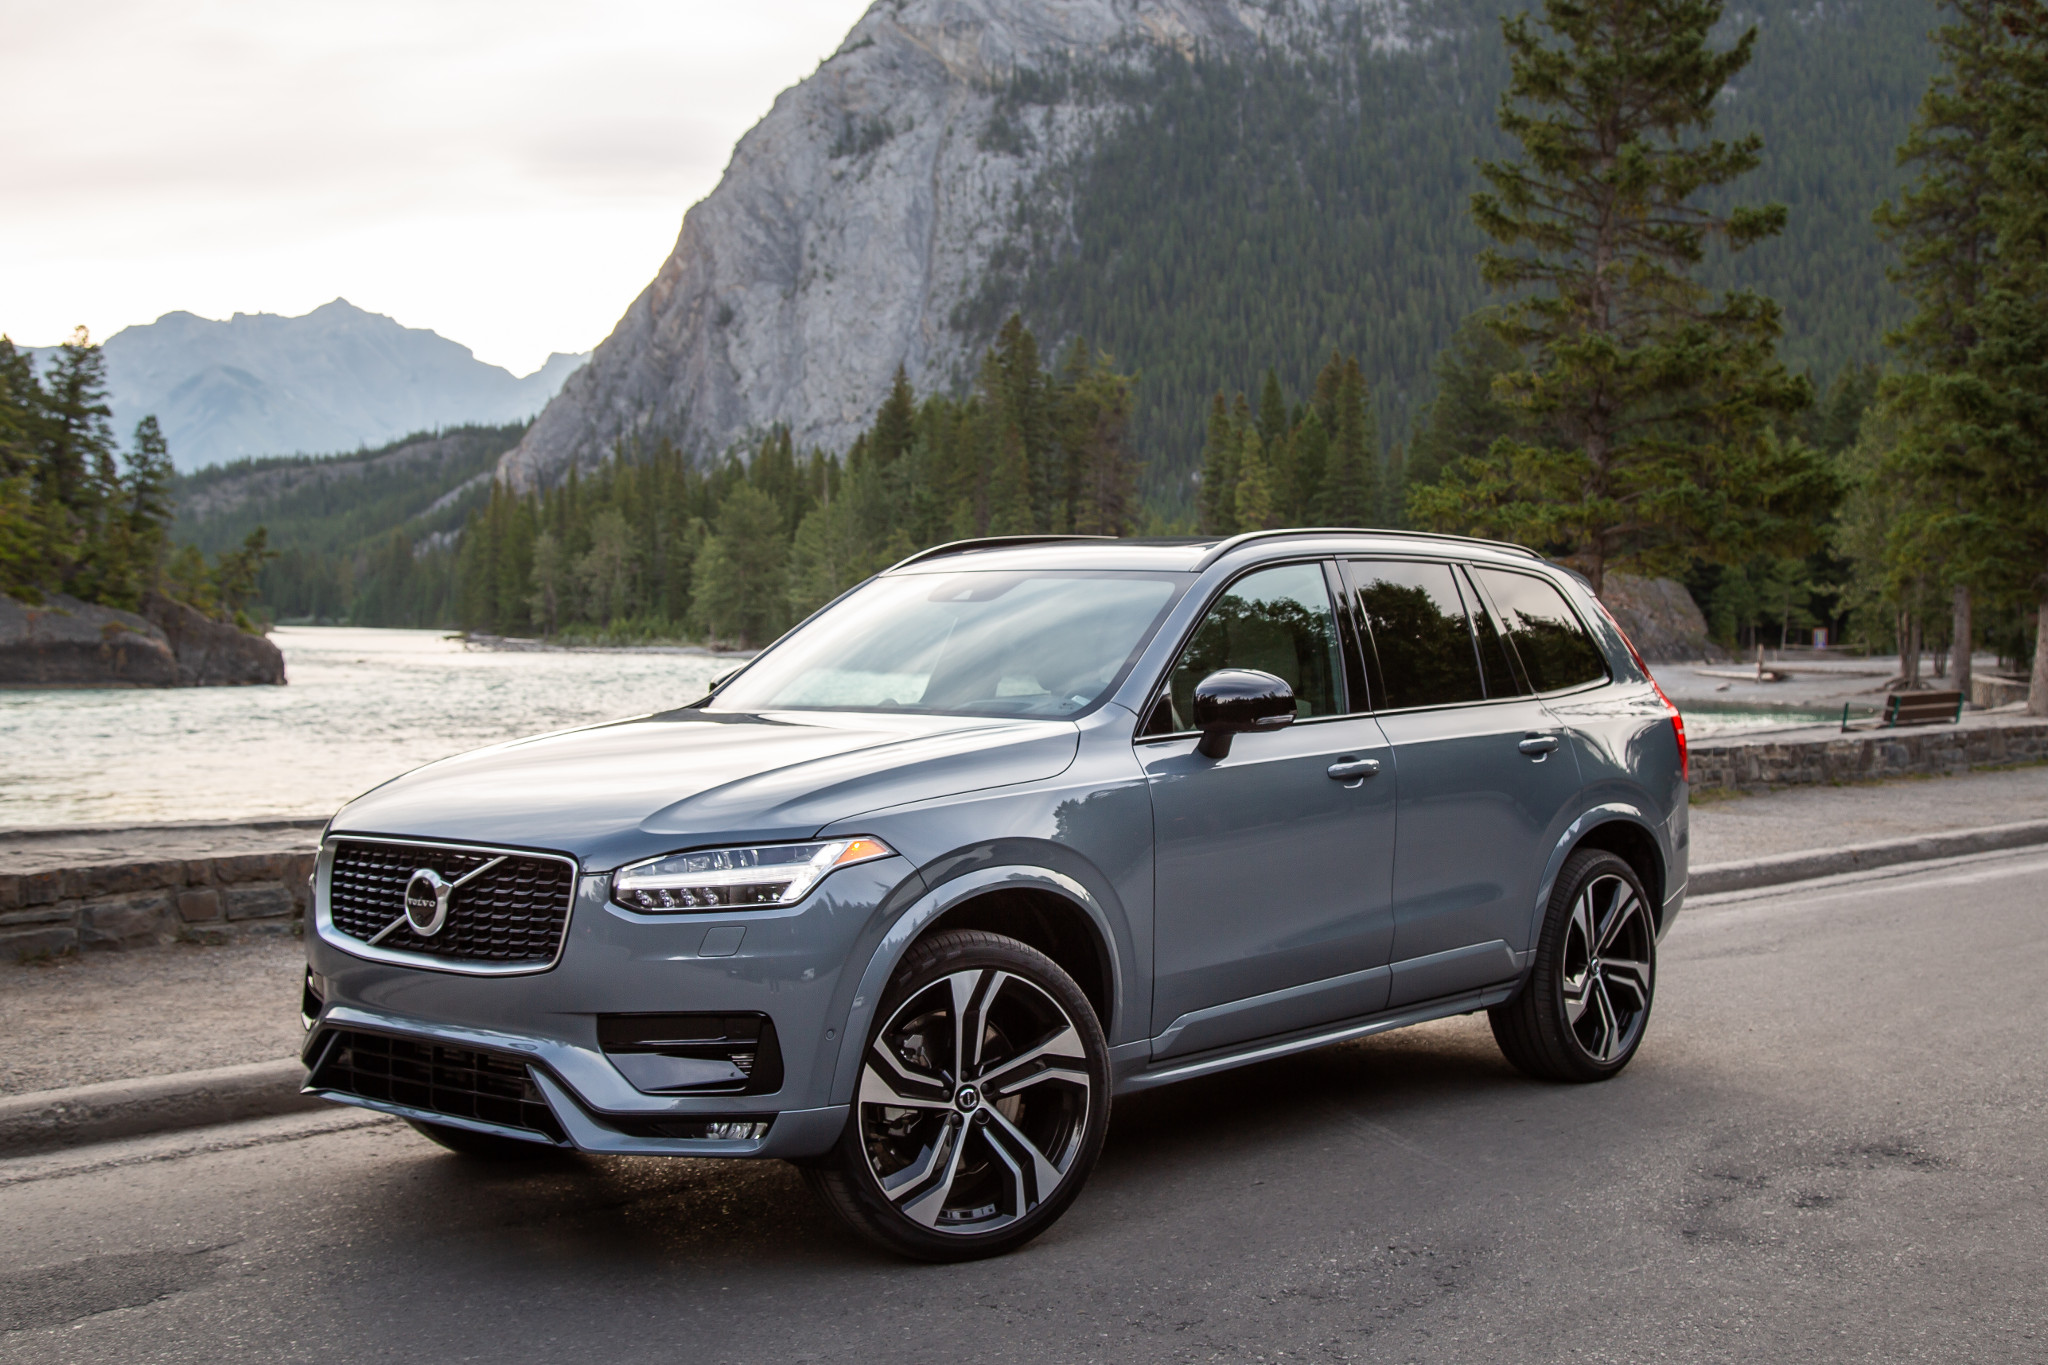 Top 5 Reviews and Videos of the Week: Volvo XC90 Makes Refreshing Return